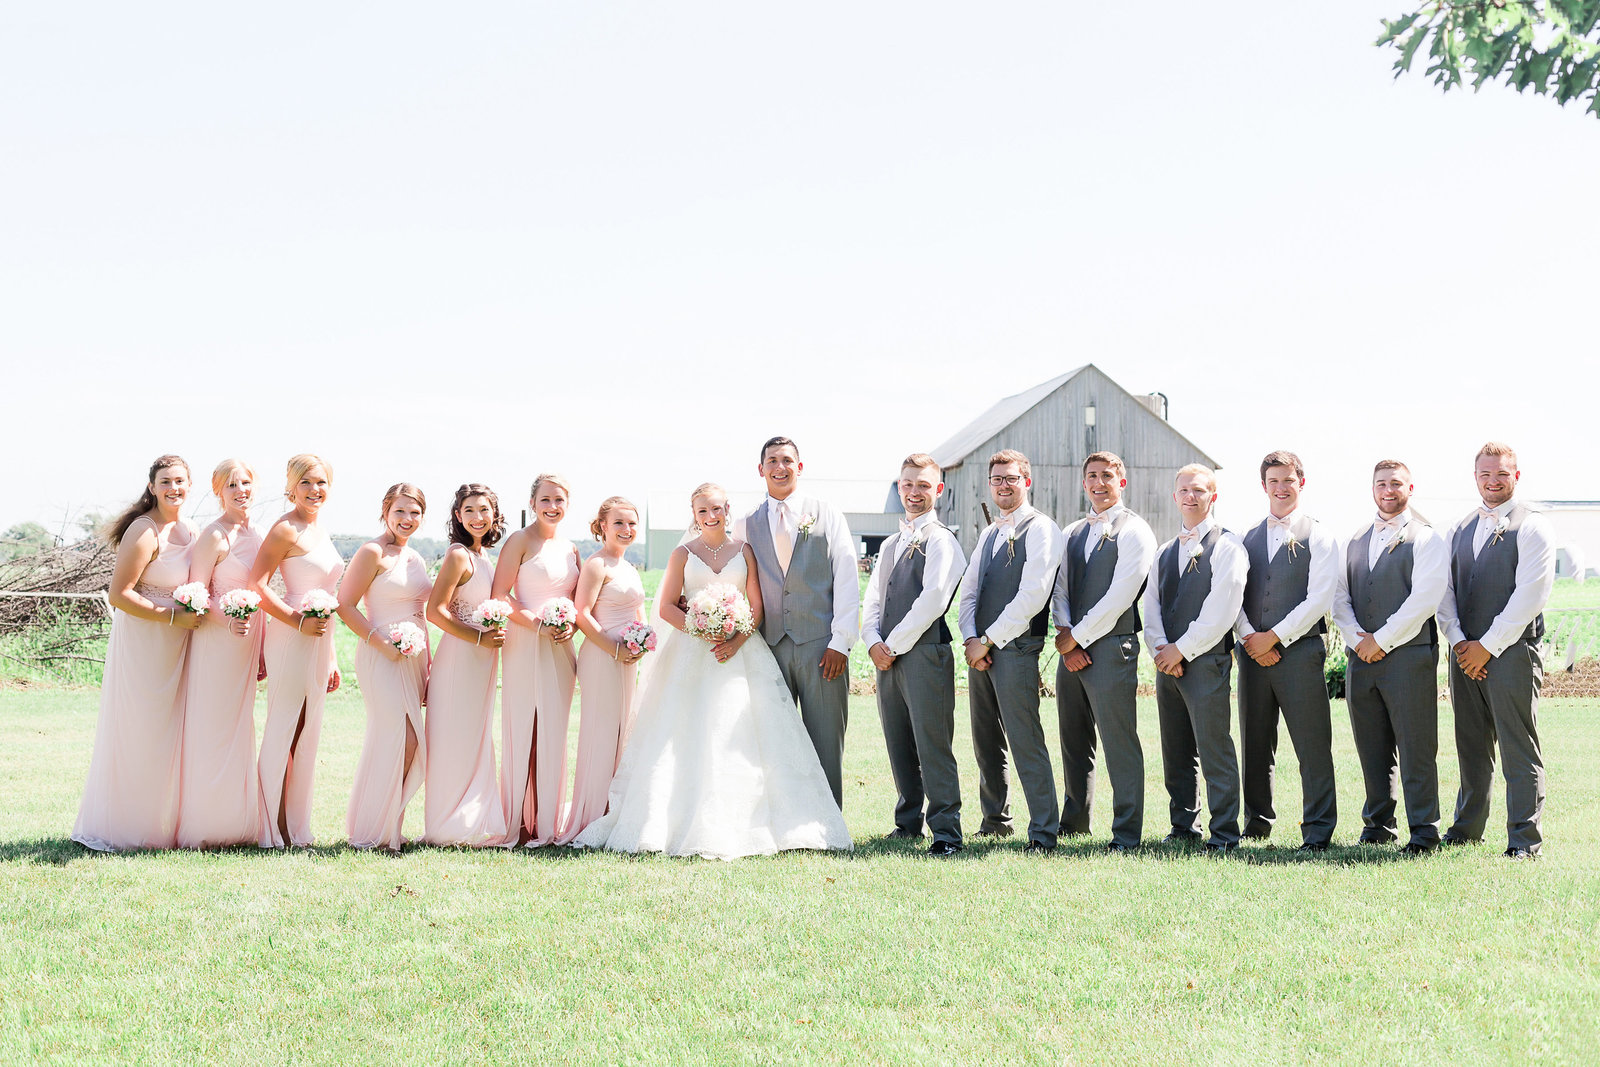 Wedding party- The Tabernacle-Monore IN wedding-9143-pp-cs